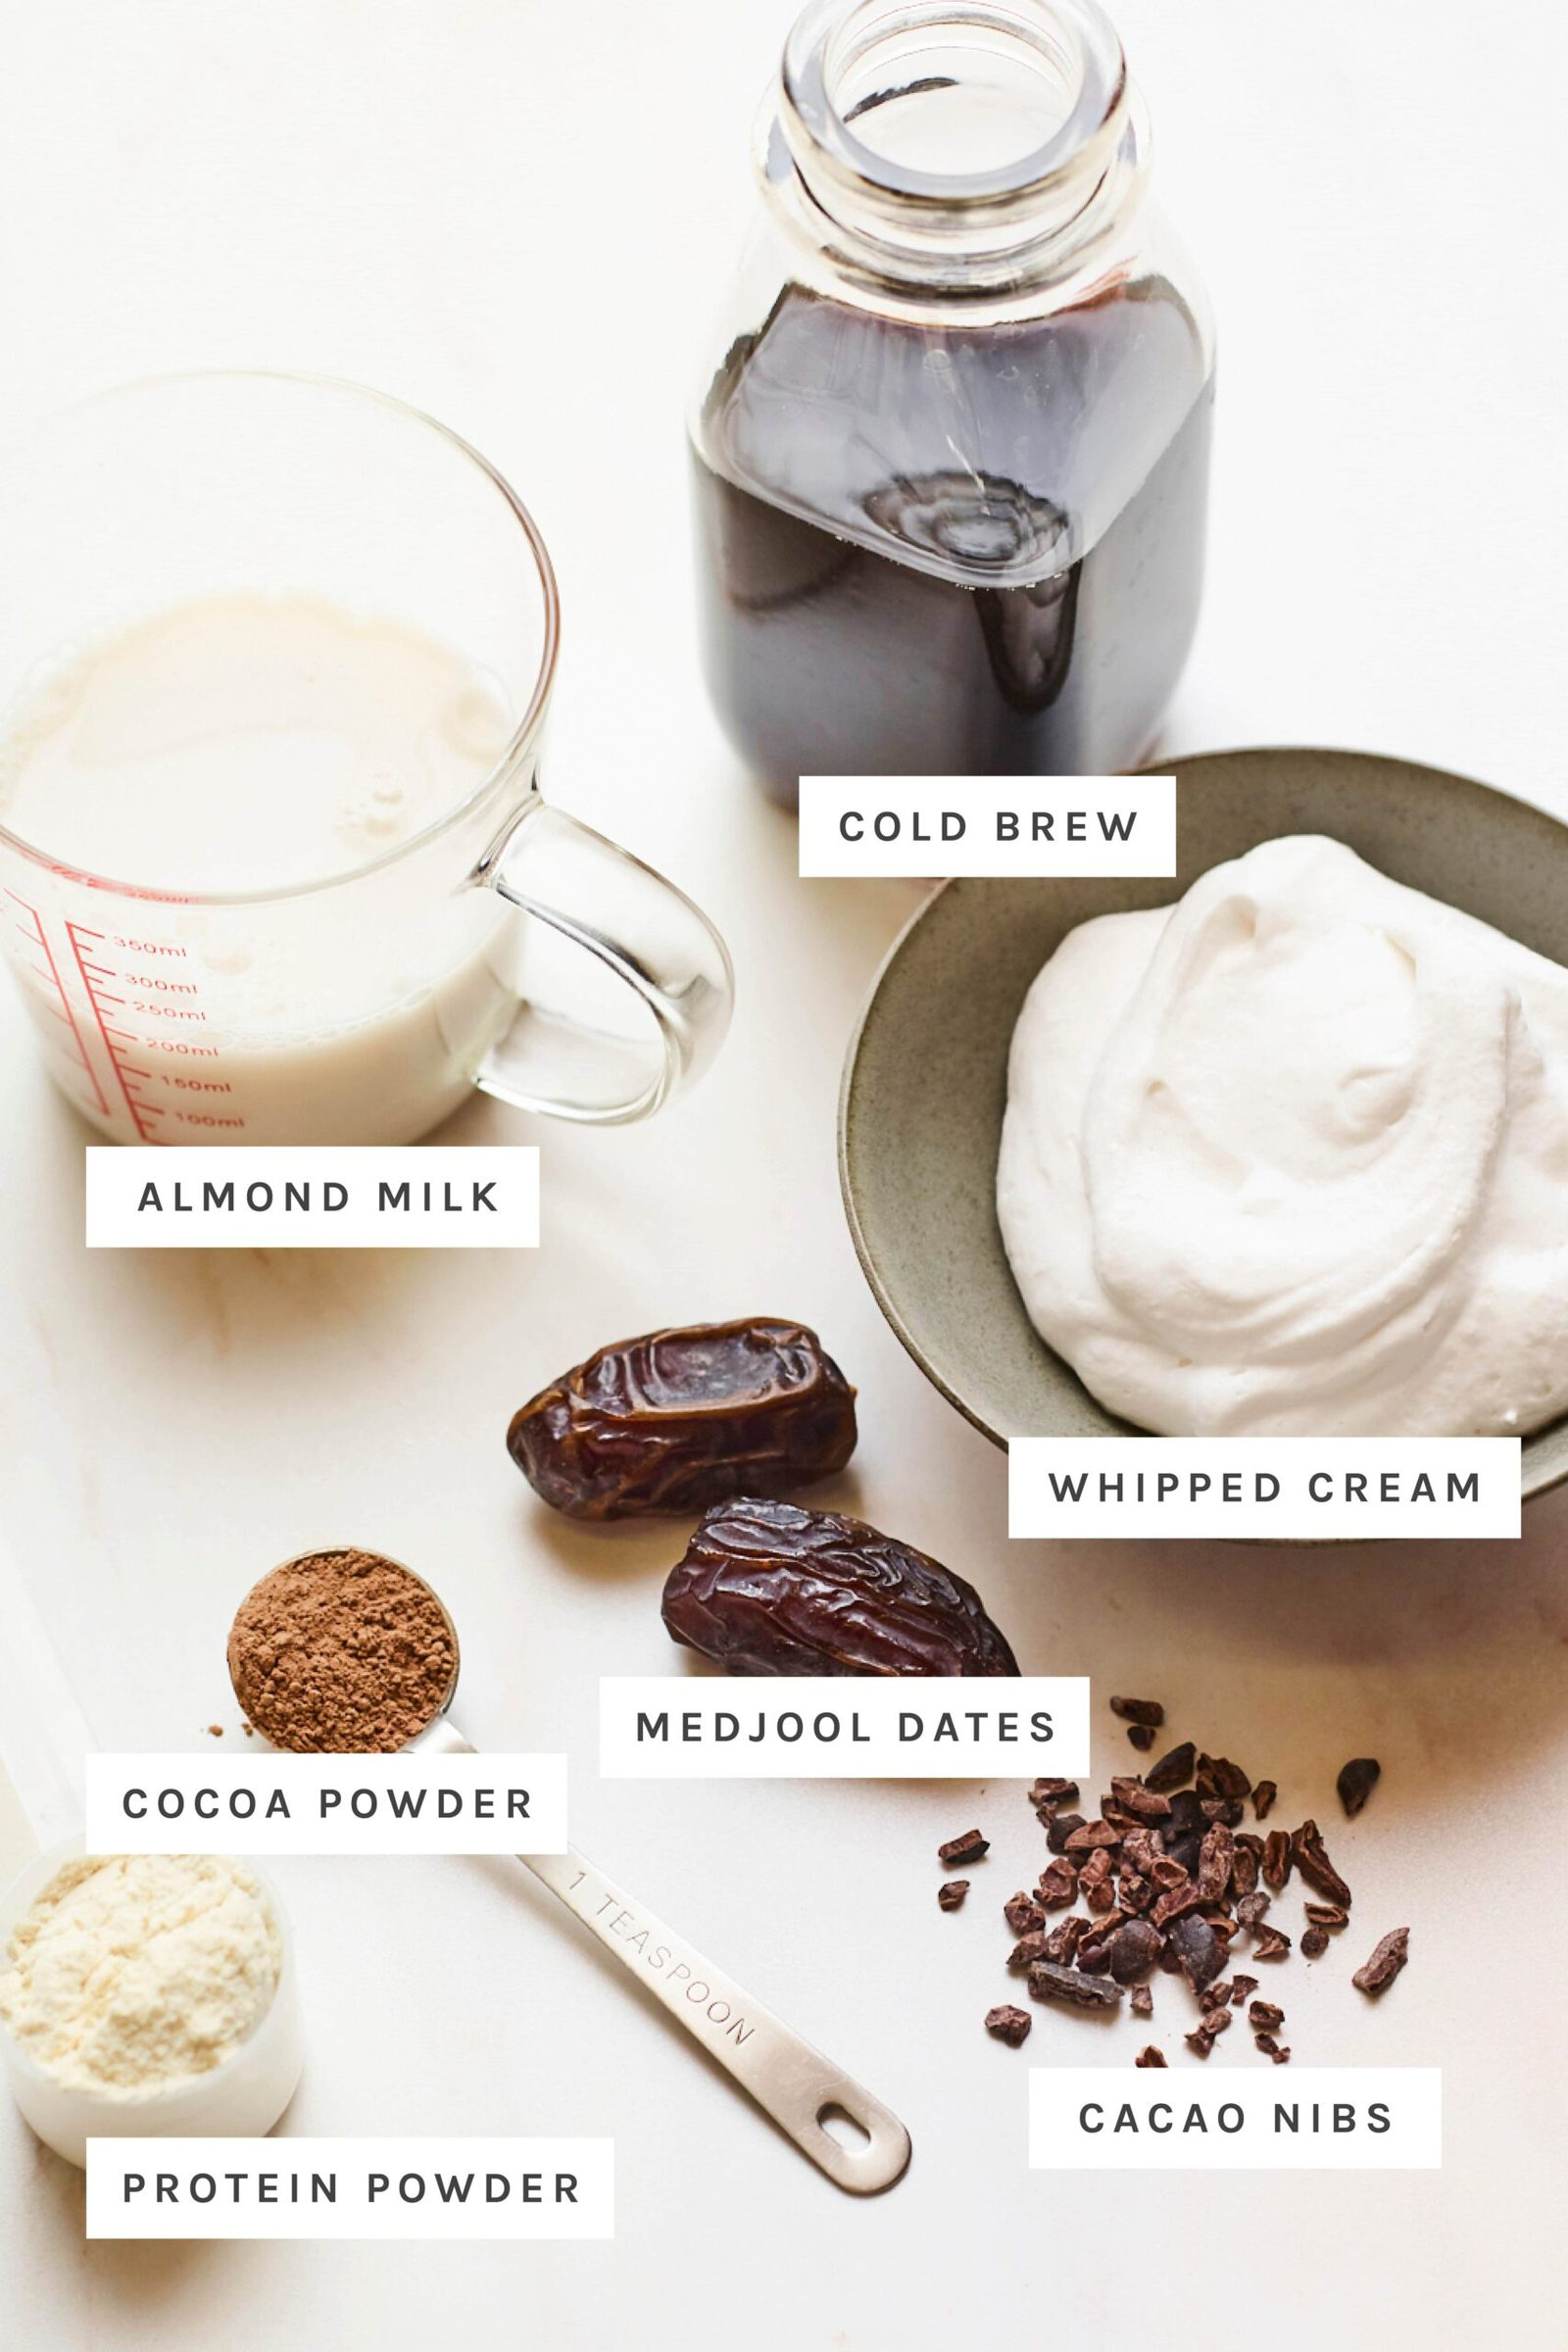 Ingredients measured out to make a healthy frappuccino.